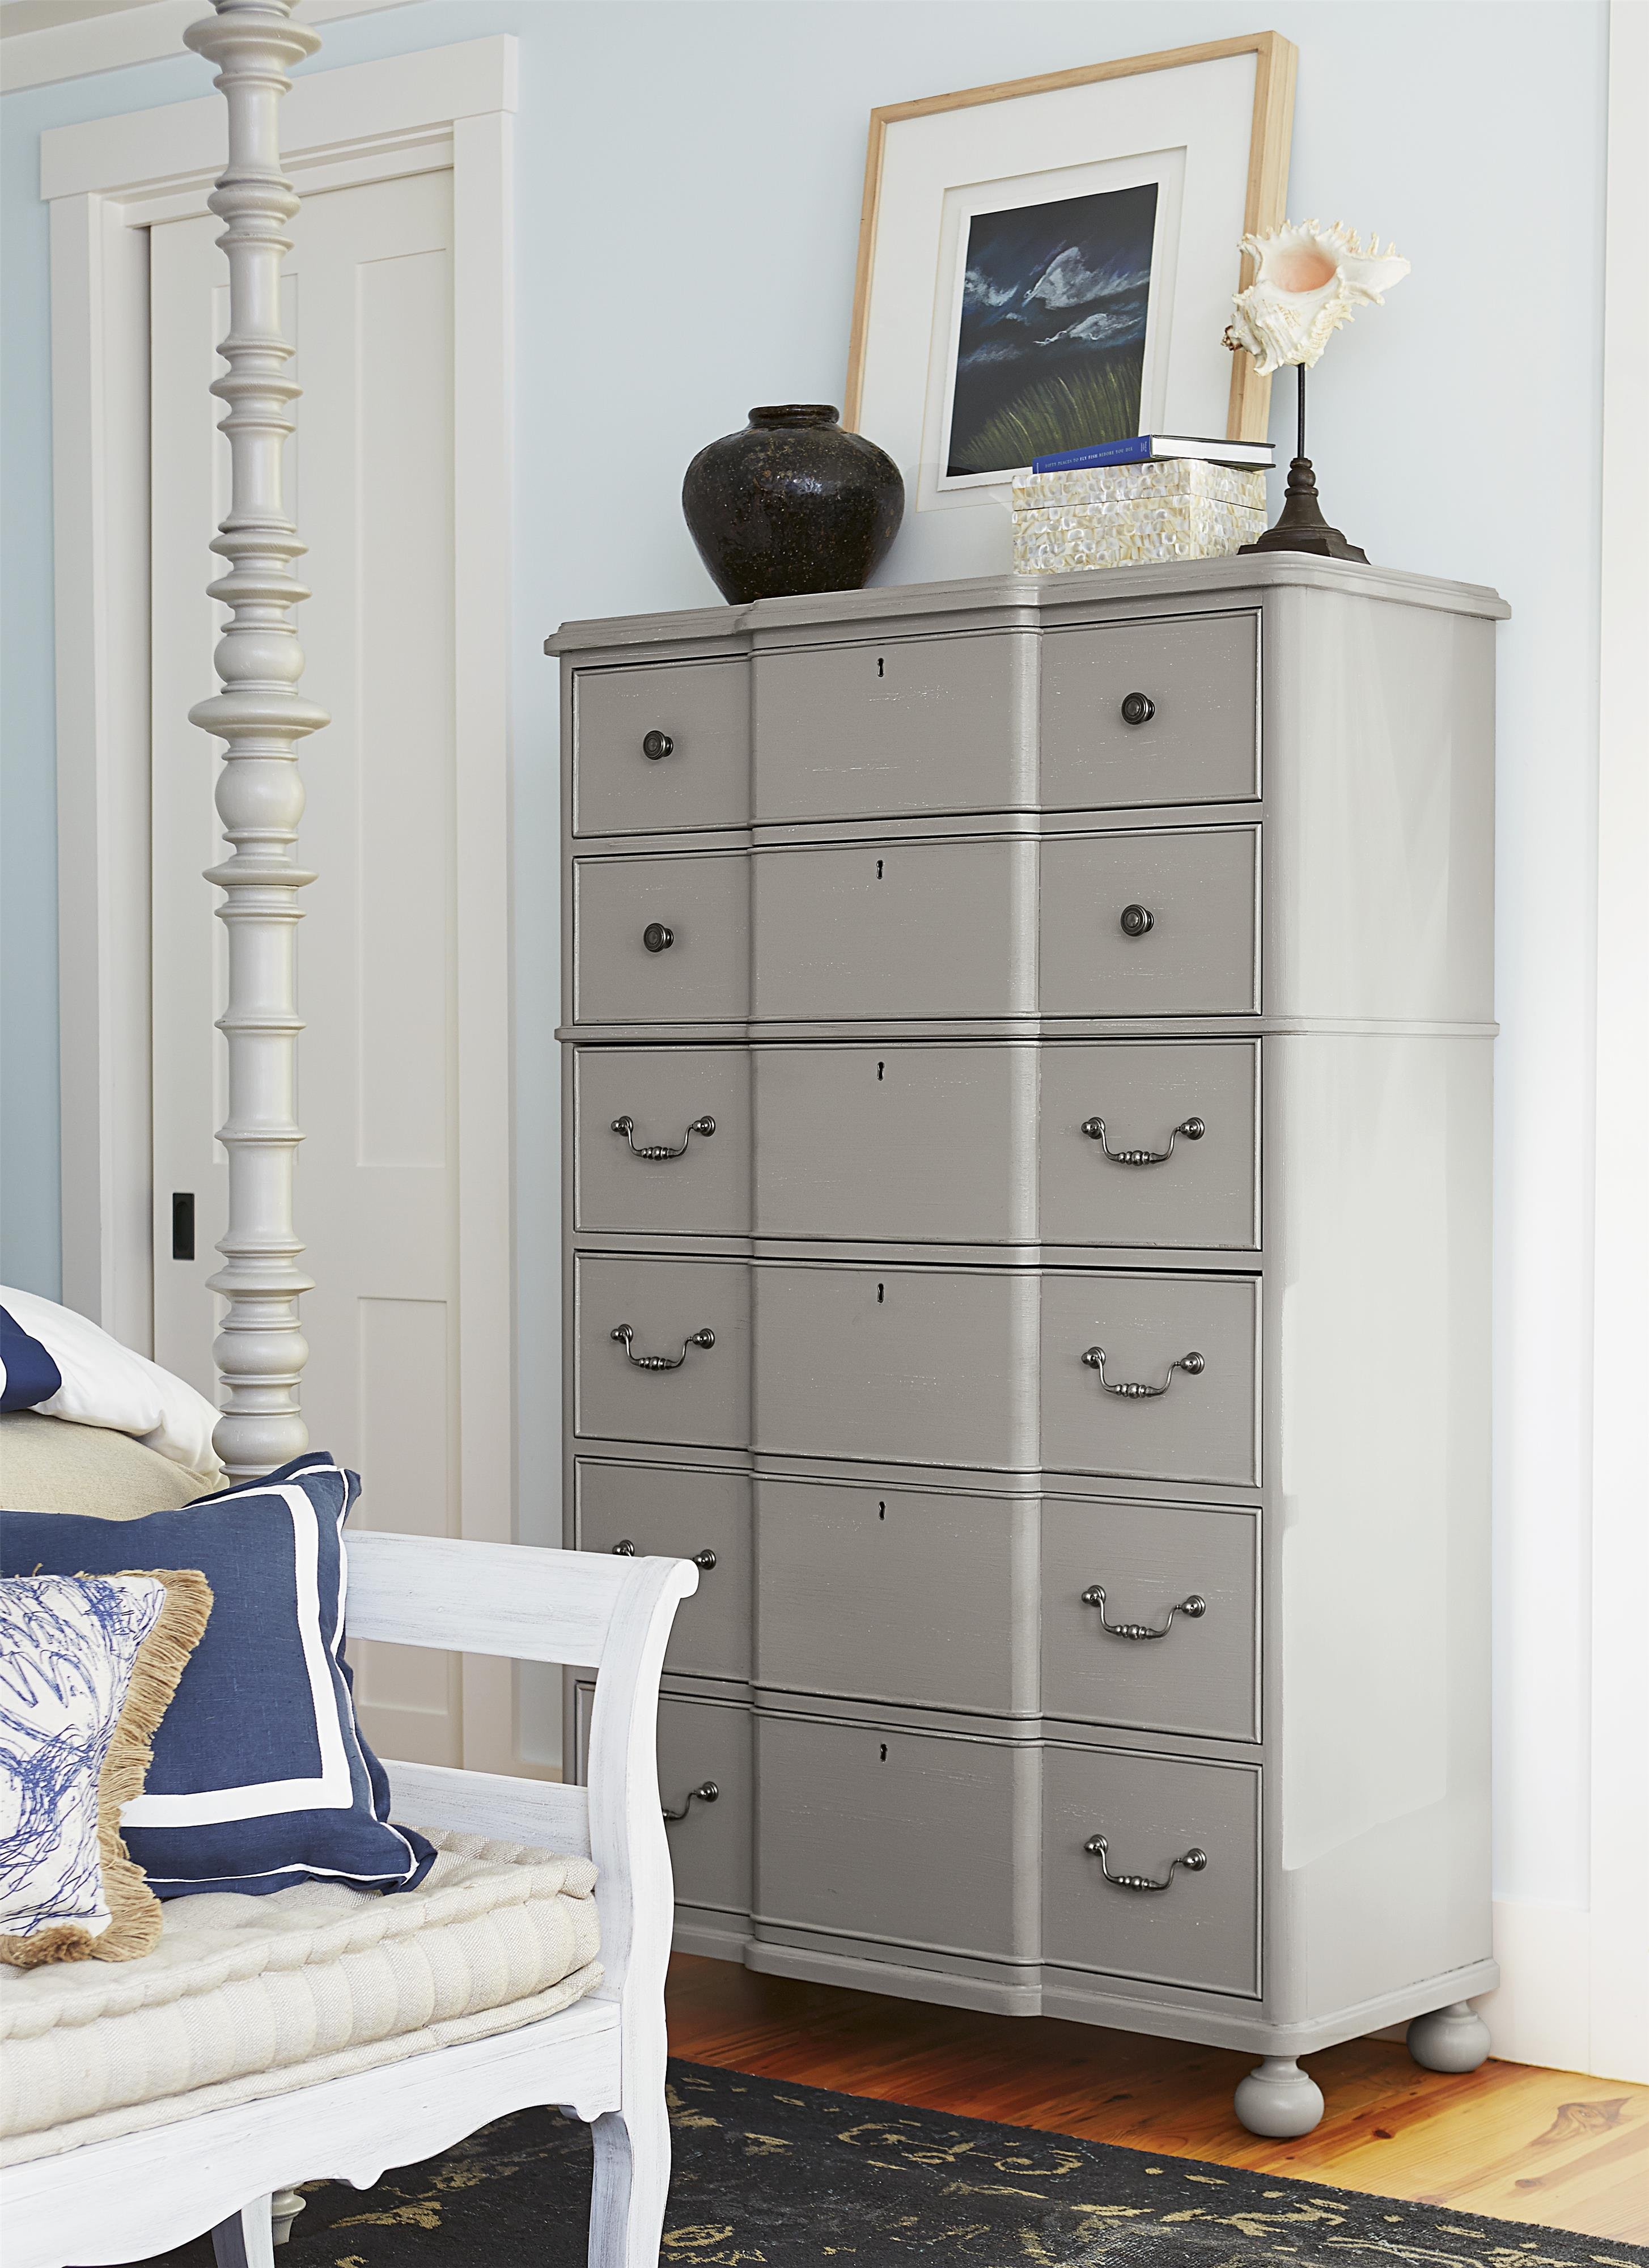 Paula Deen By Universal Dogwood 599150 Drawer Chest With Bun Feet Baer 39 S Furniture Drawer Chests